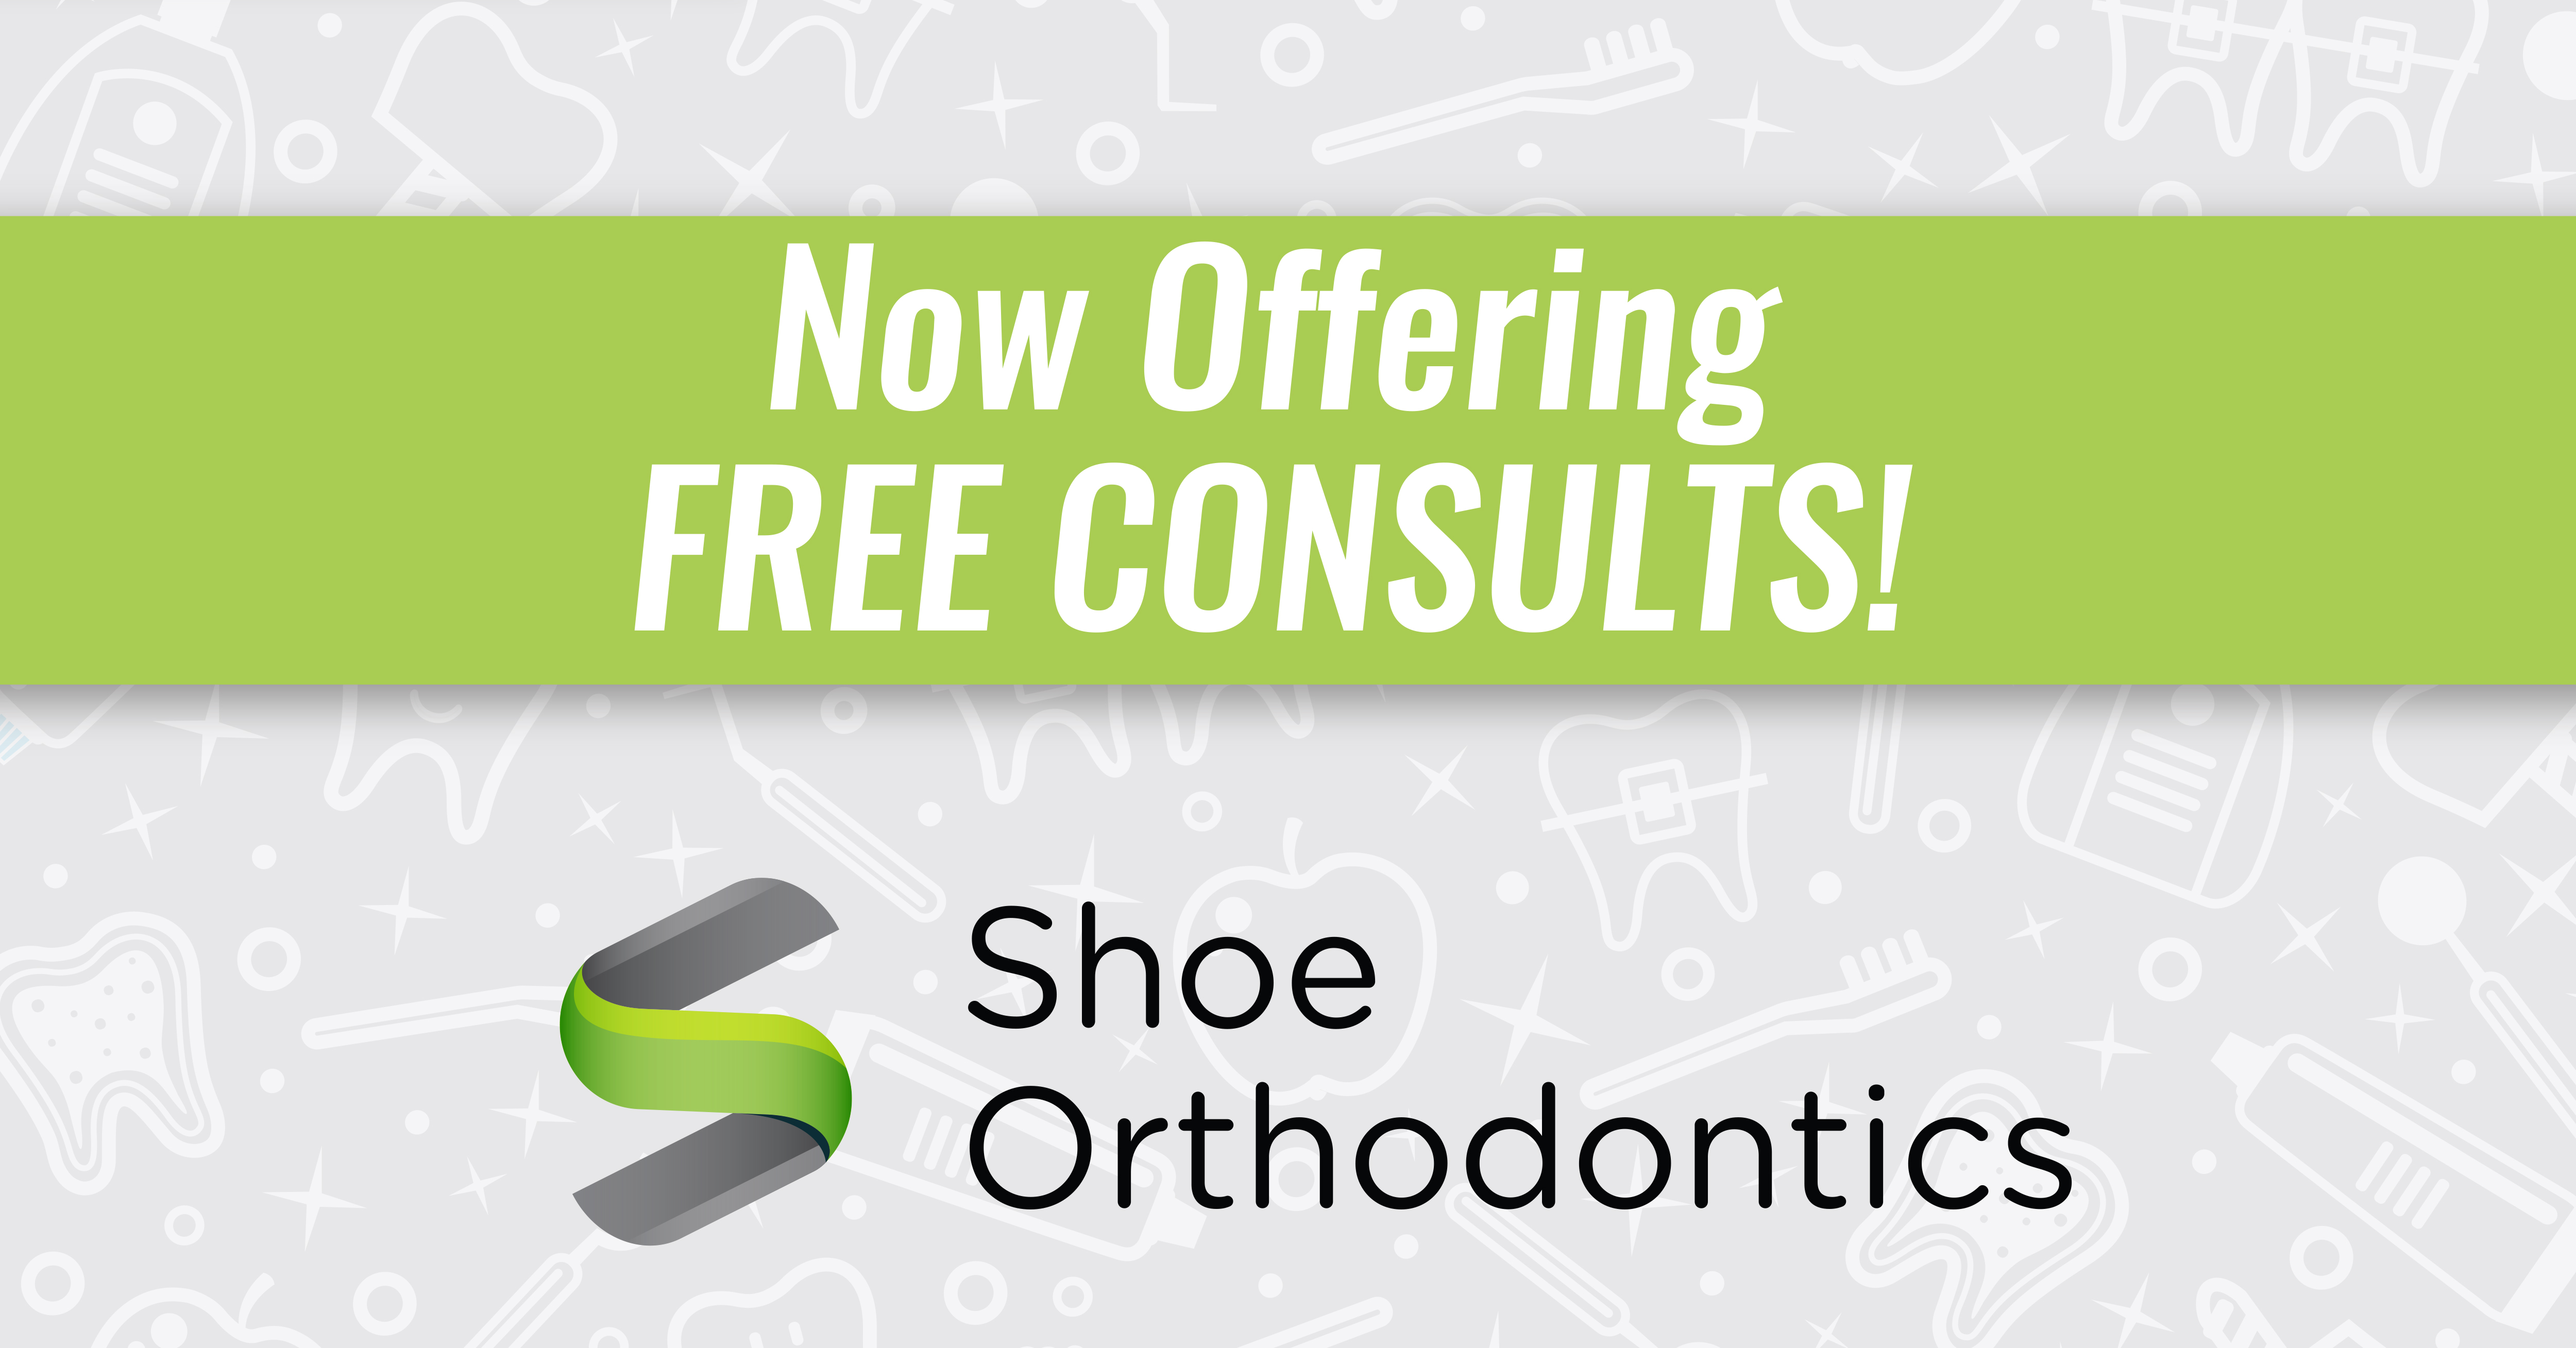 Shoe_free-consults_1200x628